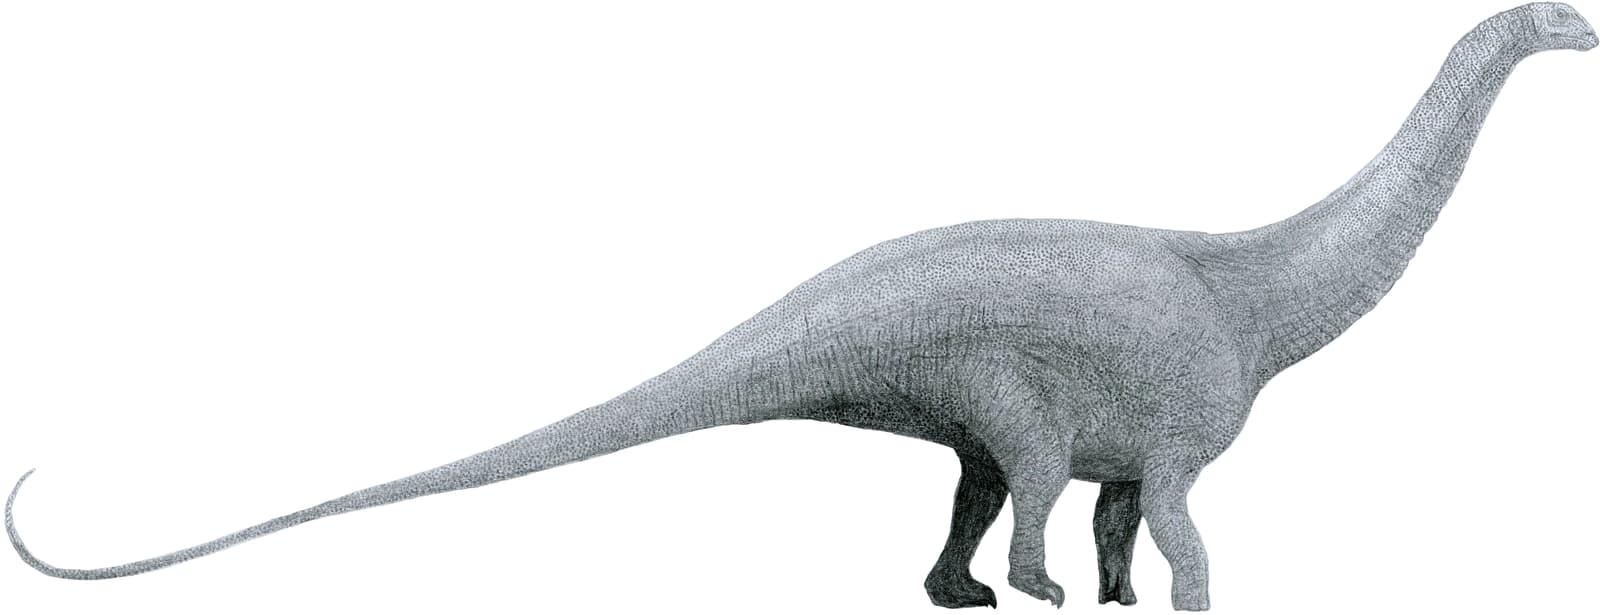 Random Laughably Wrong Things People Used To Think About Dinosaurs